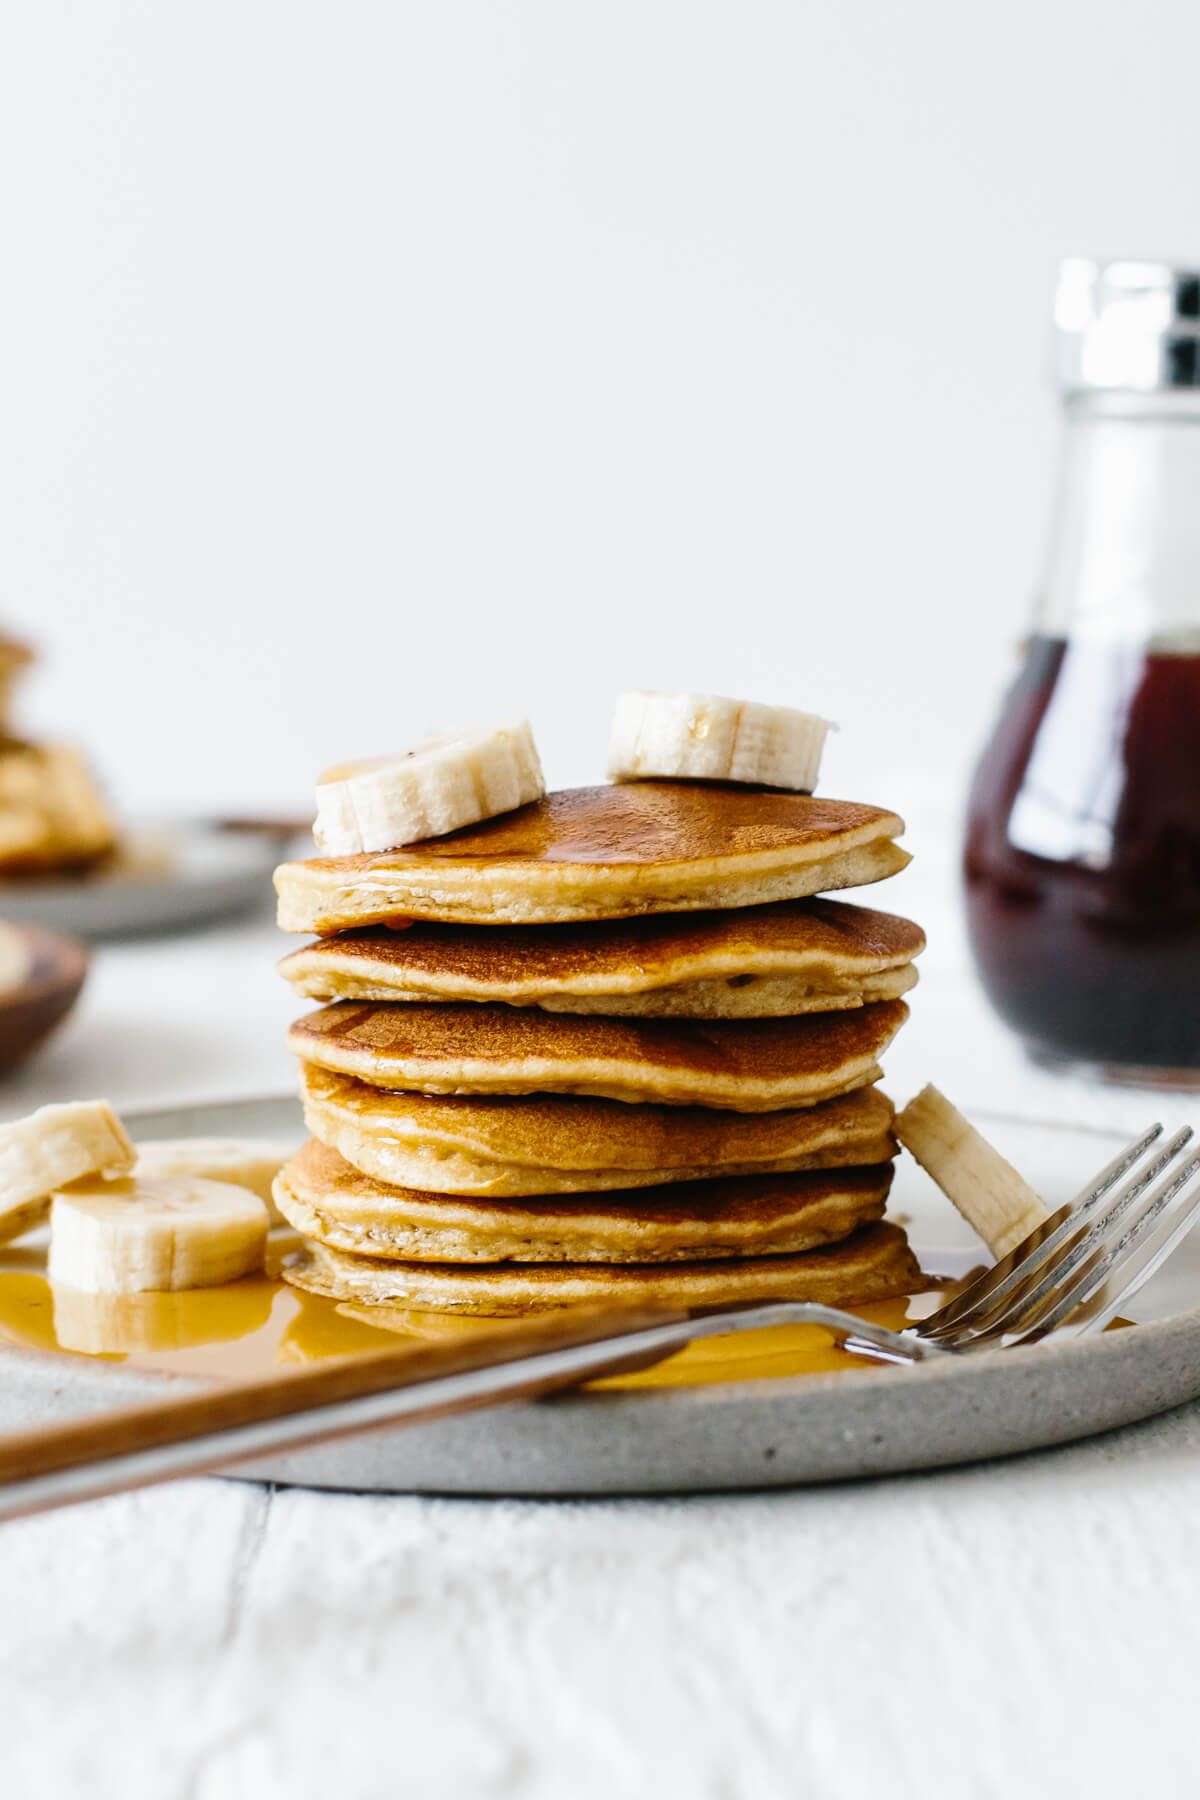 Stack of paleo pancakes on a plate with sliced bananas and syrup.